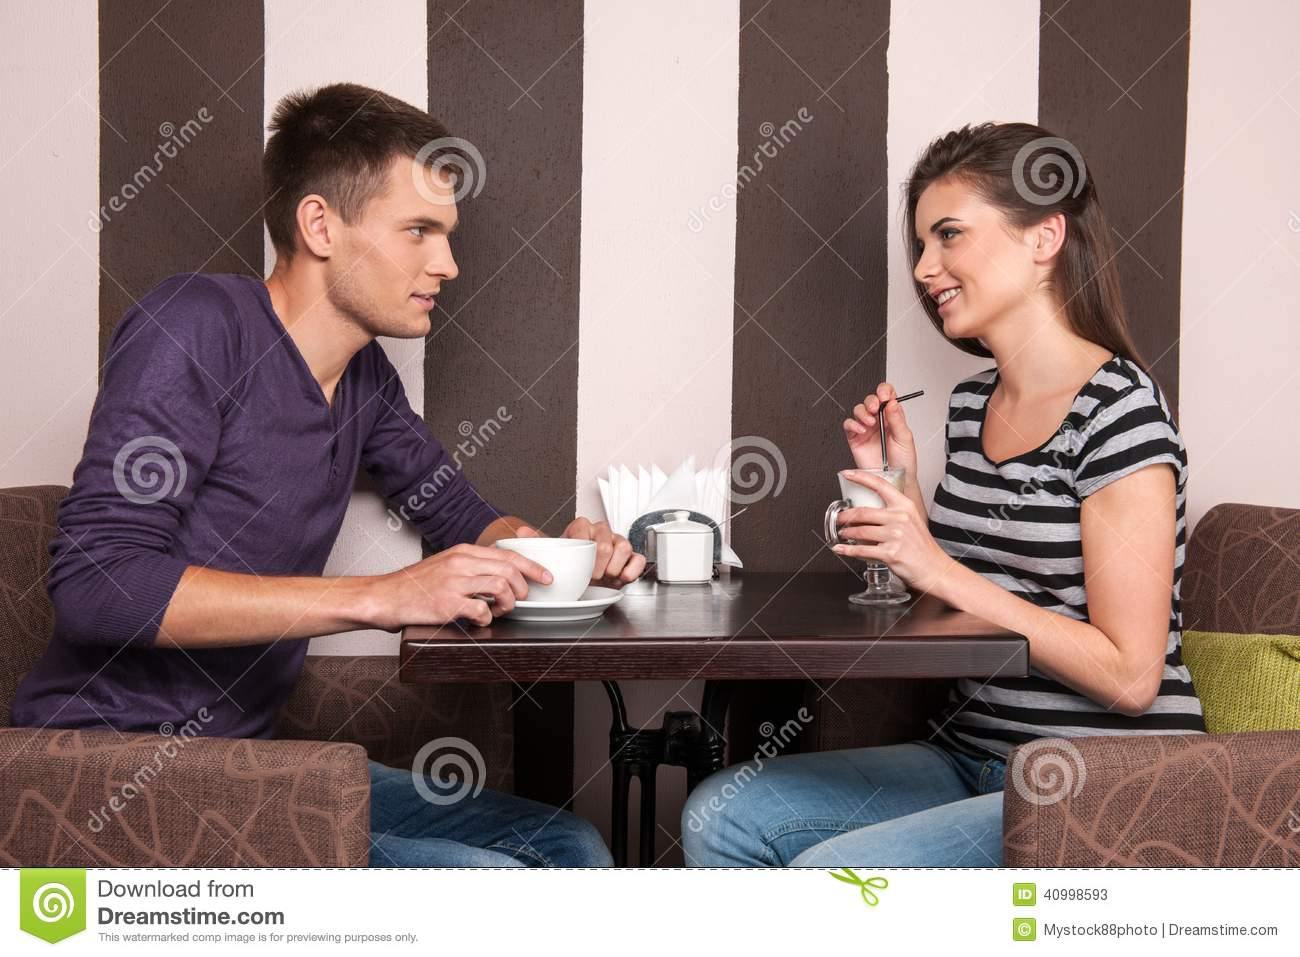 Guy and girl dating at irish coffee shop